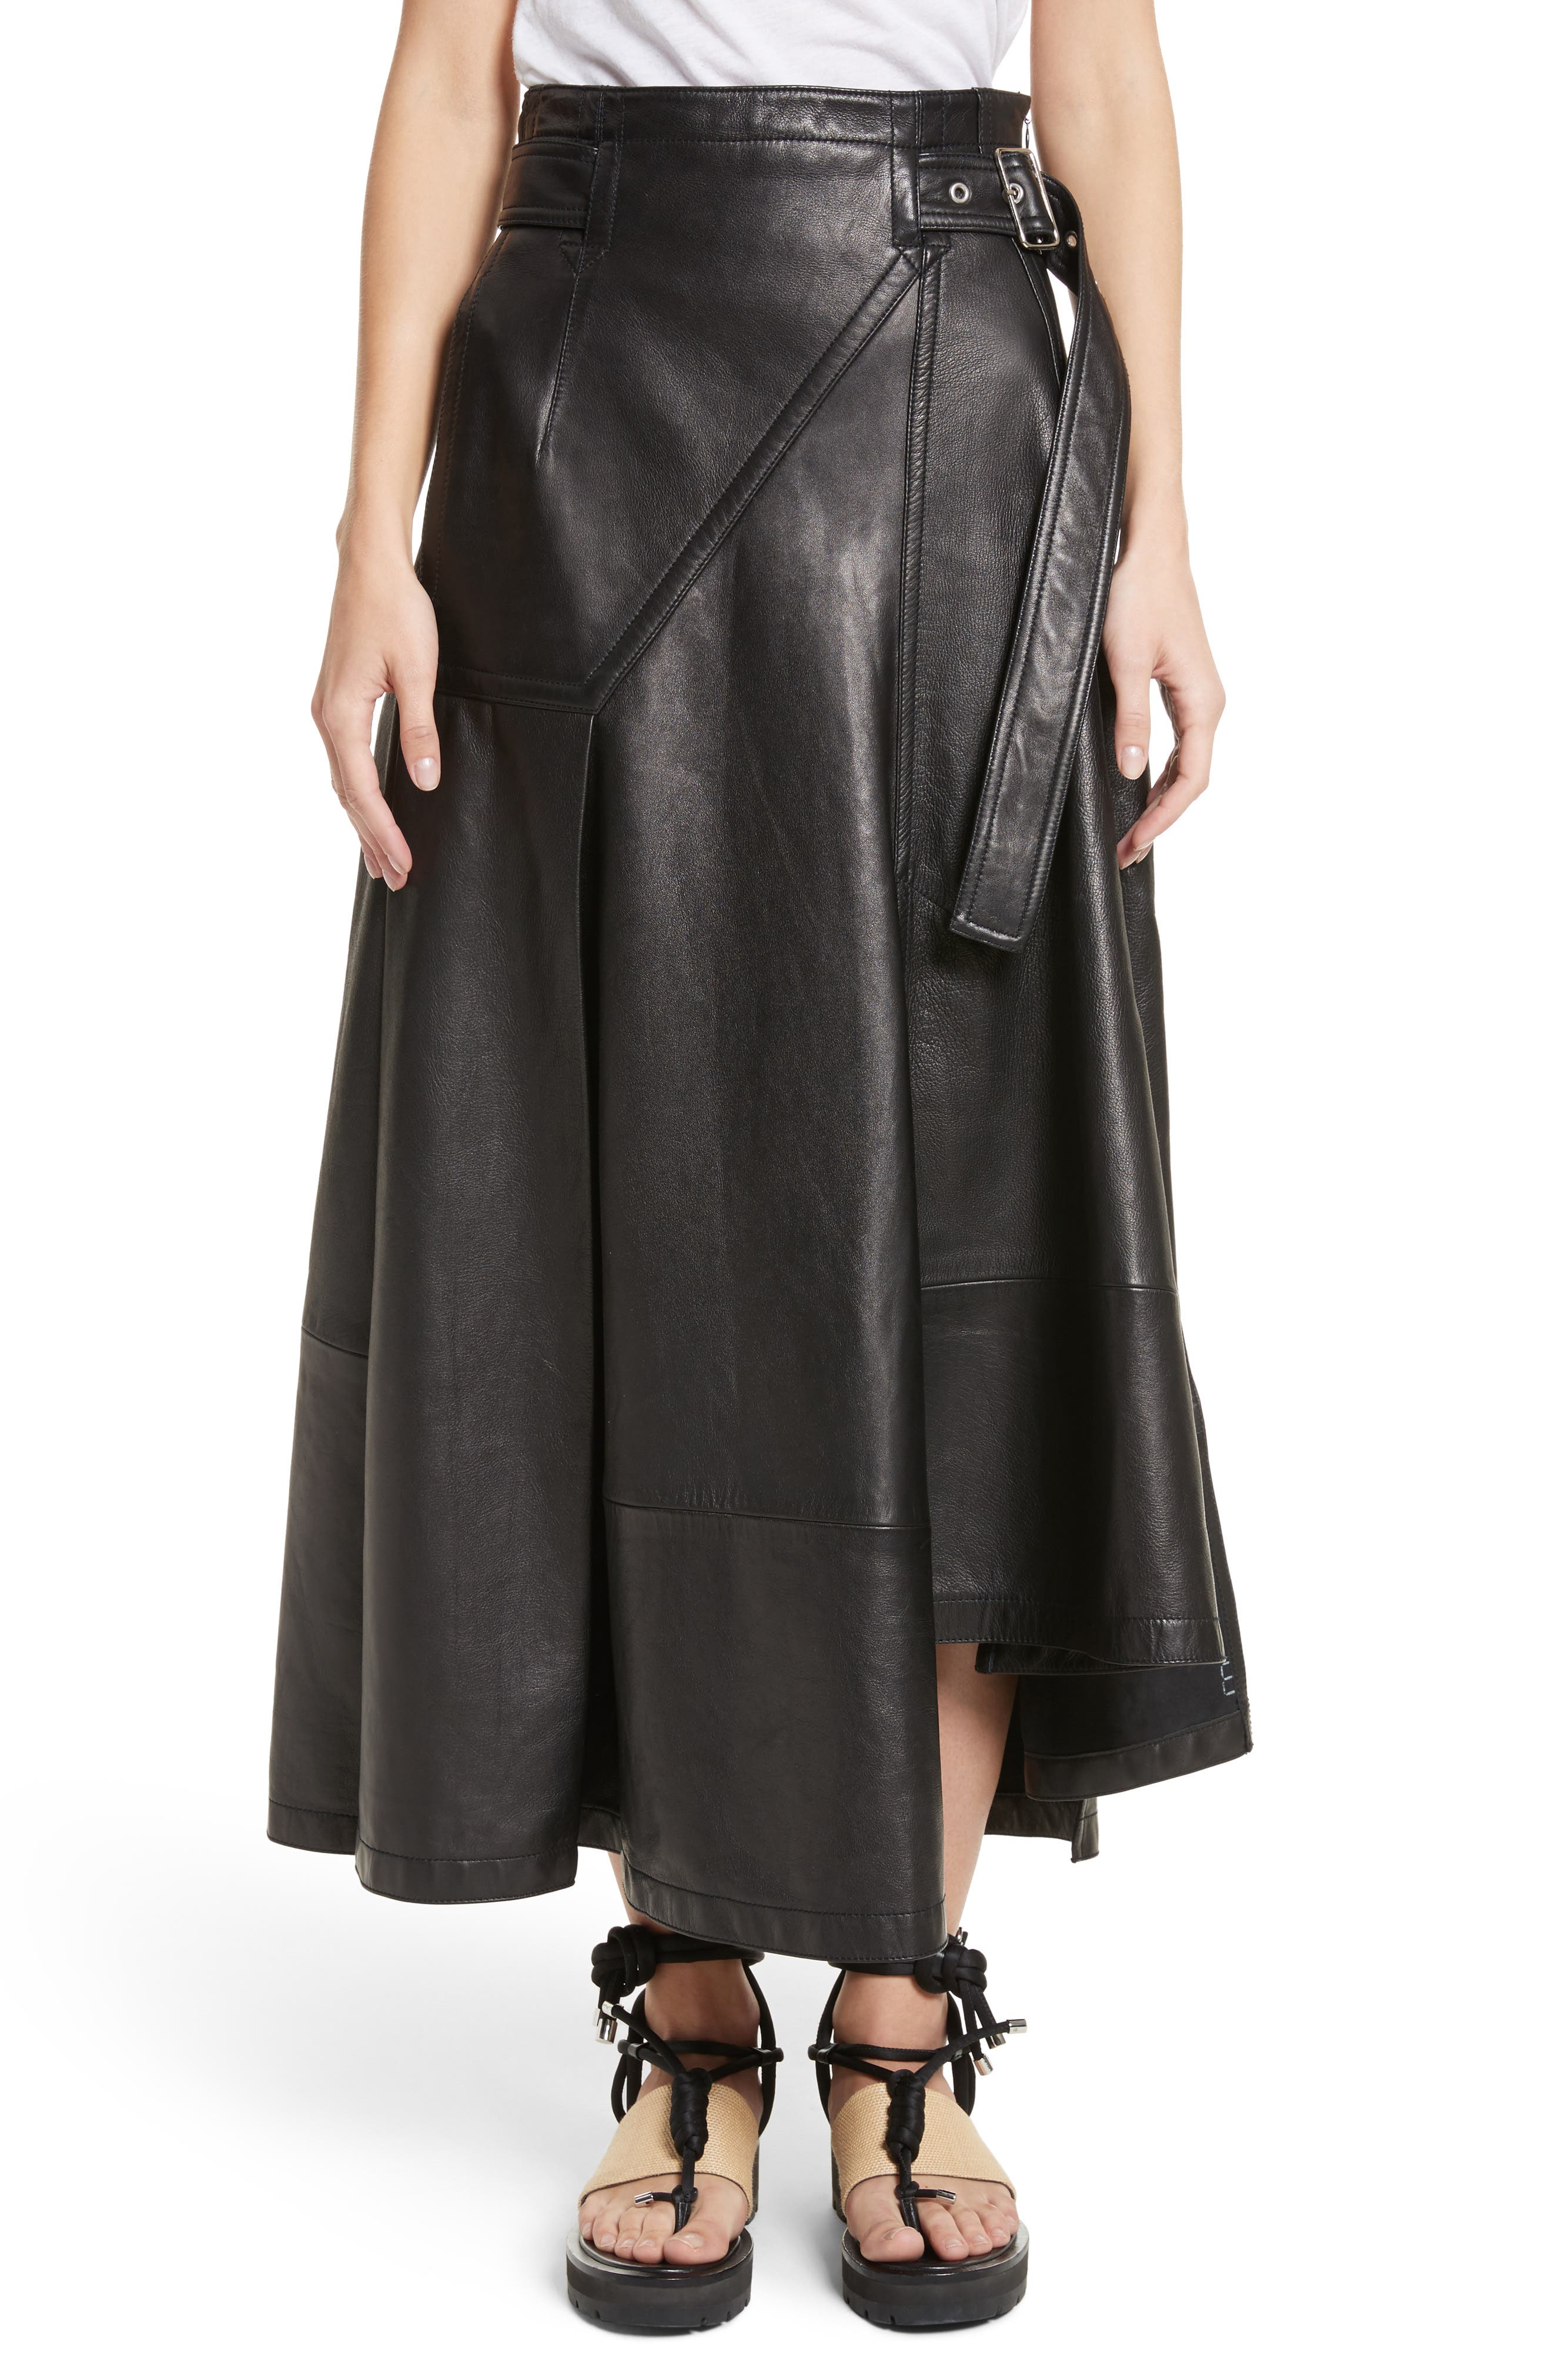 Main Image - 3.1 Phillip Lim Leather Utility Skirt